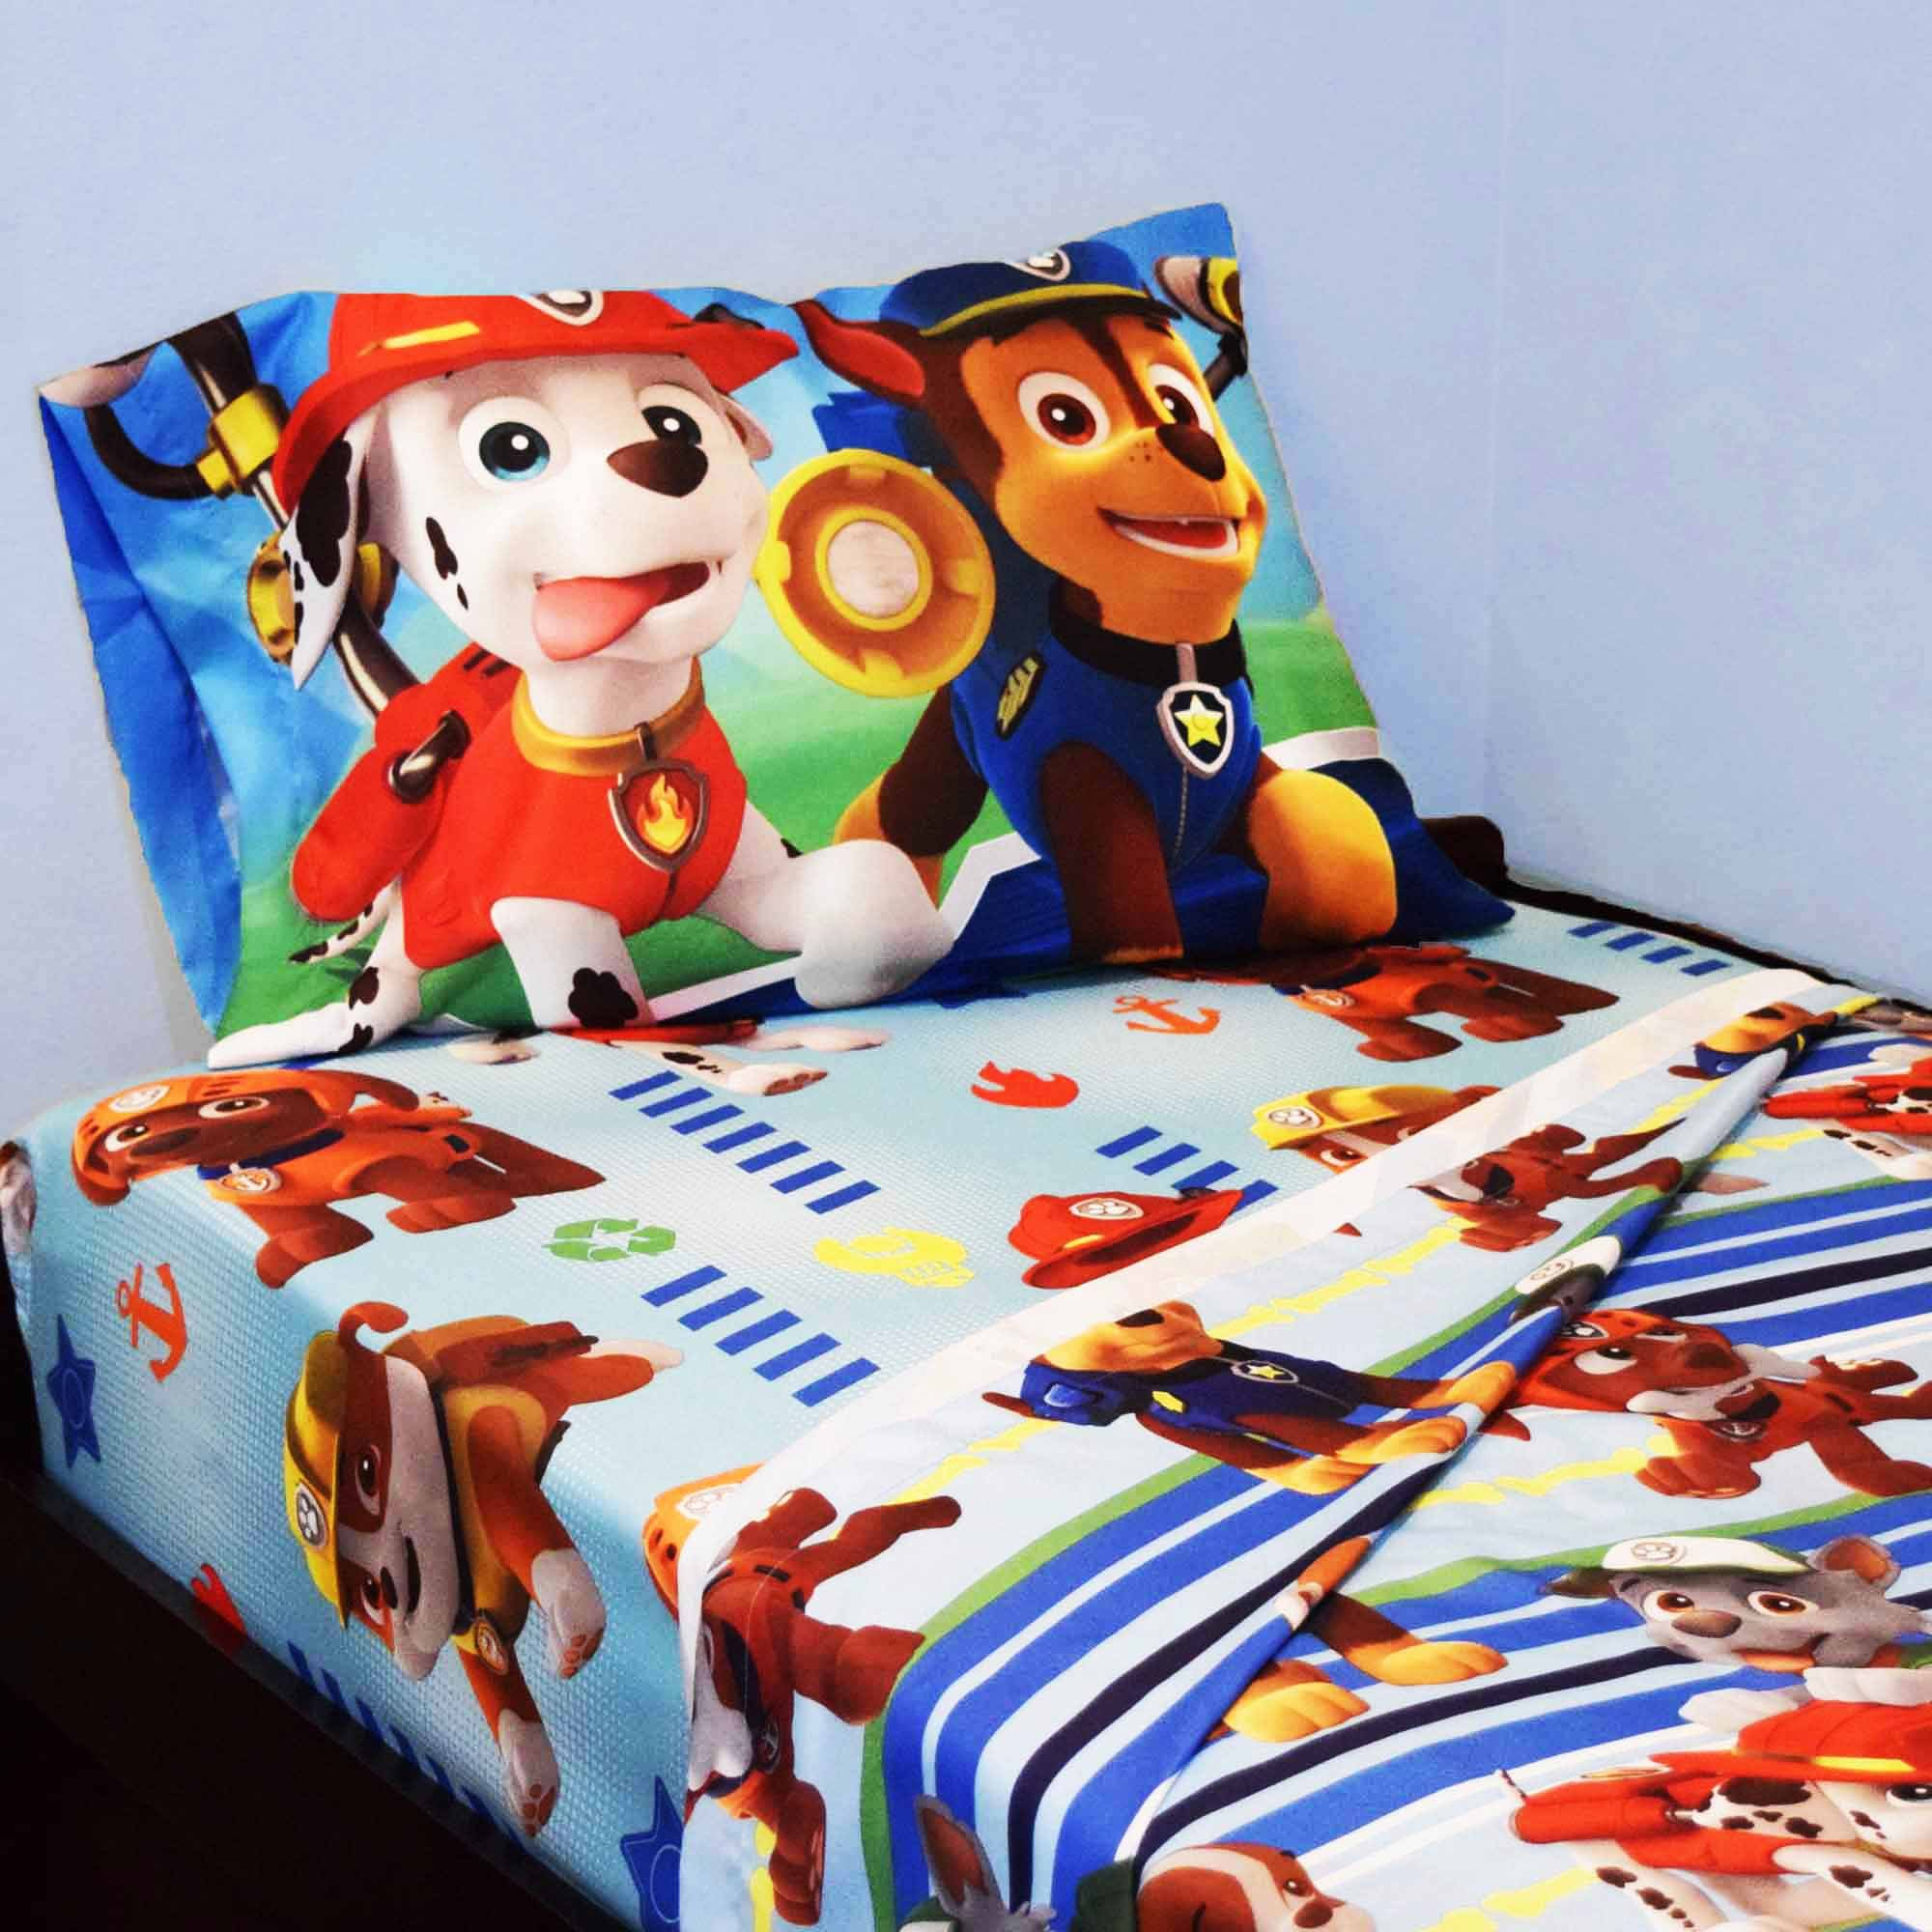 Kohl's Paw Patrol 3 Piece Twin Bed Sheets - Chase, Marshall, Rubble, Zuma - Kids Microfiber Bedding Set